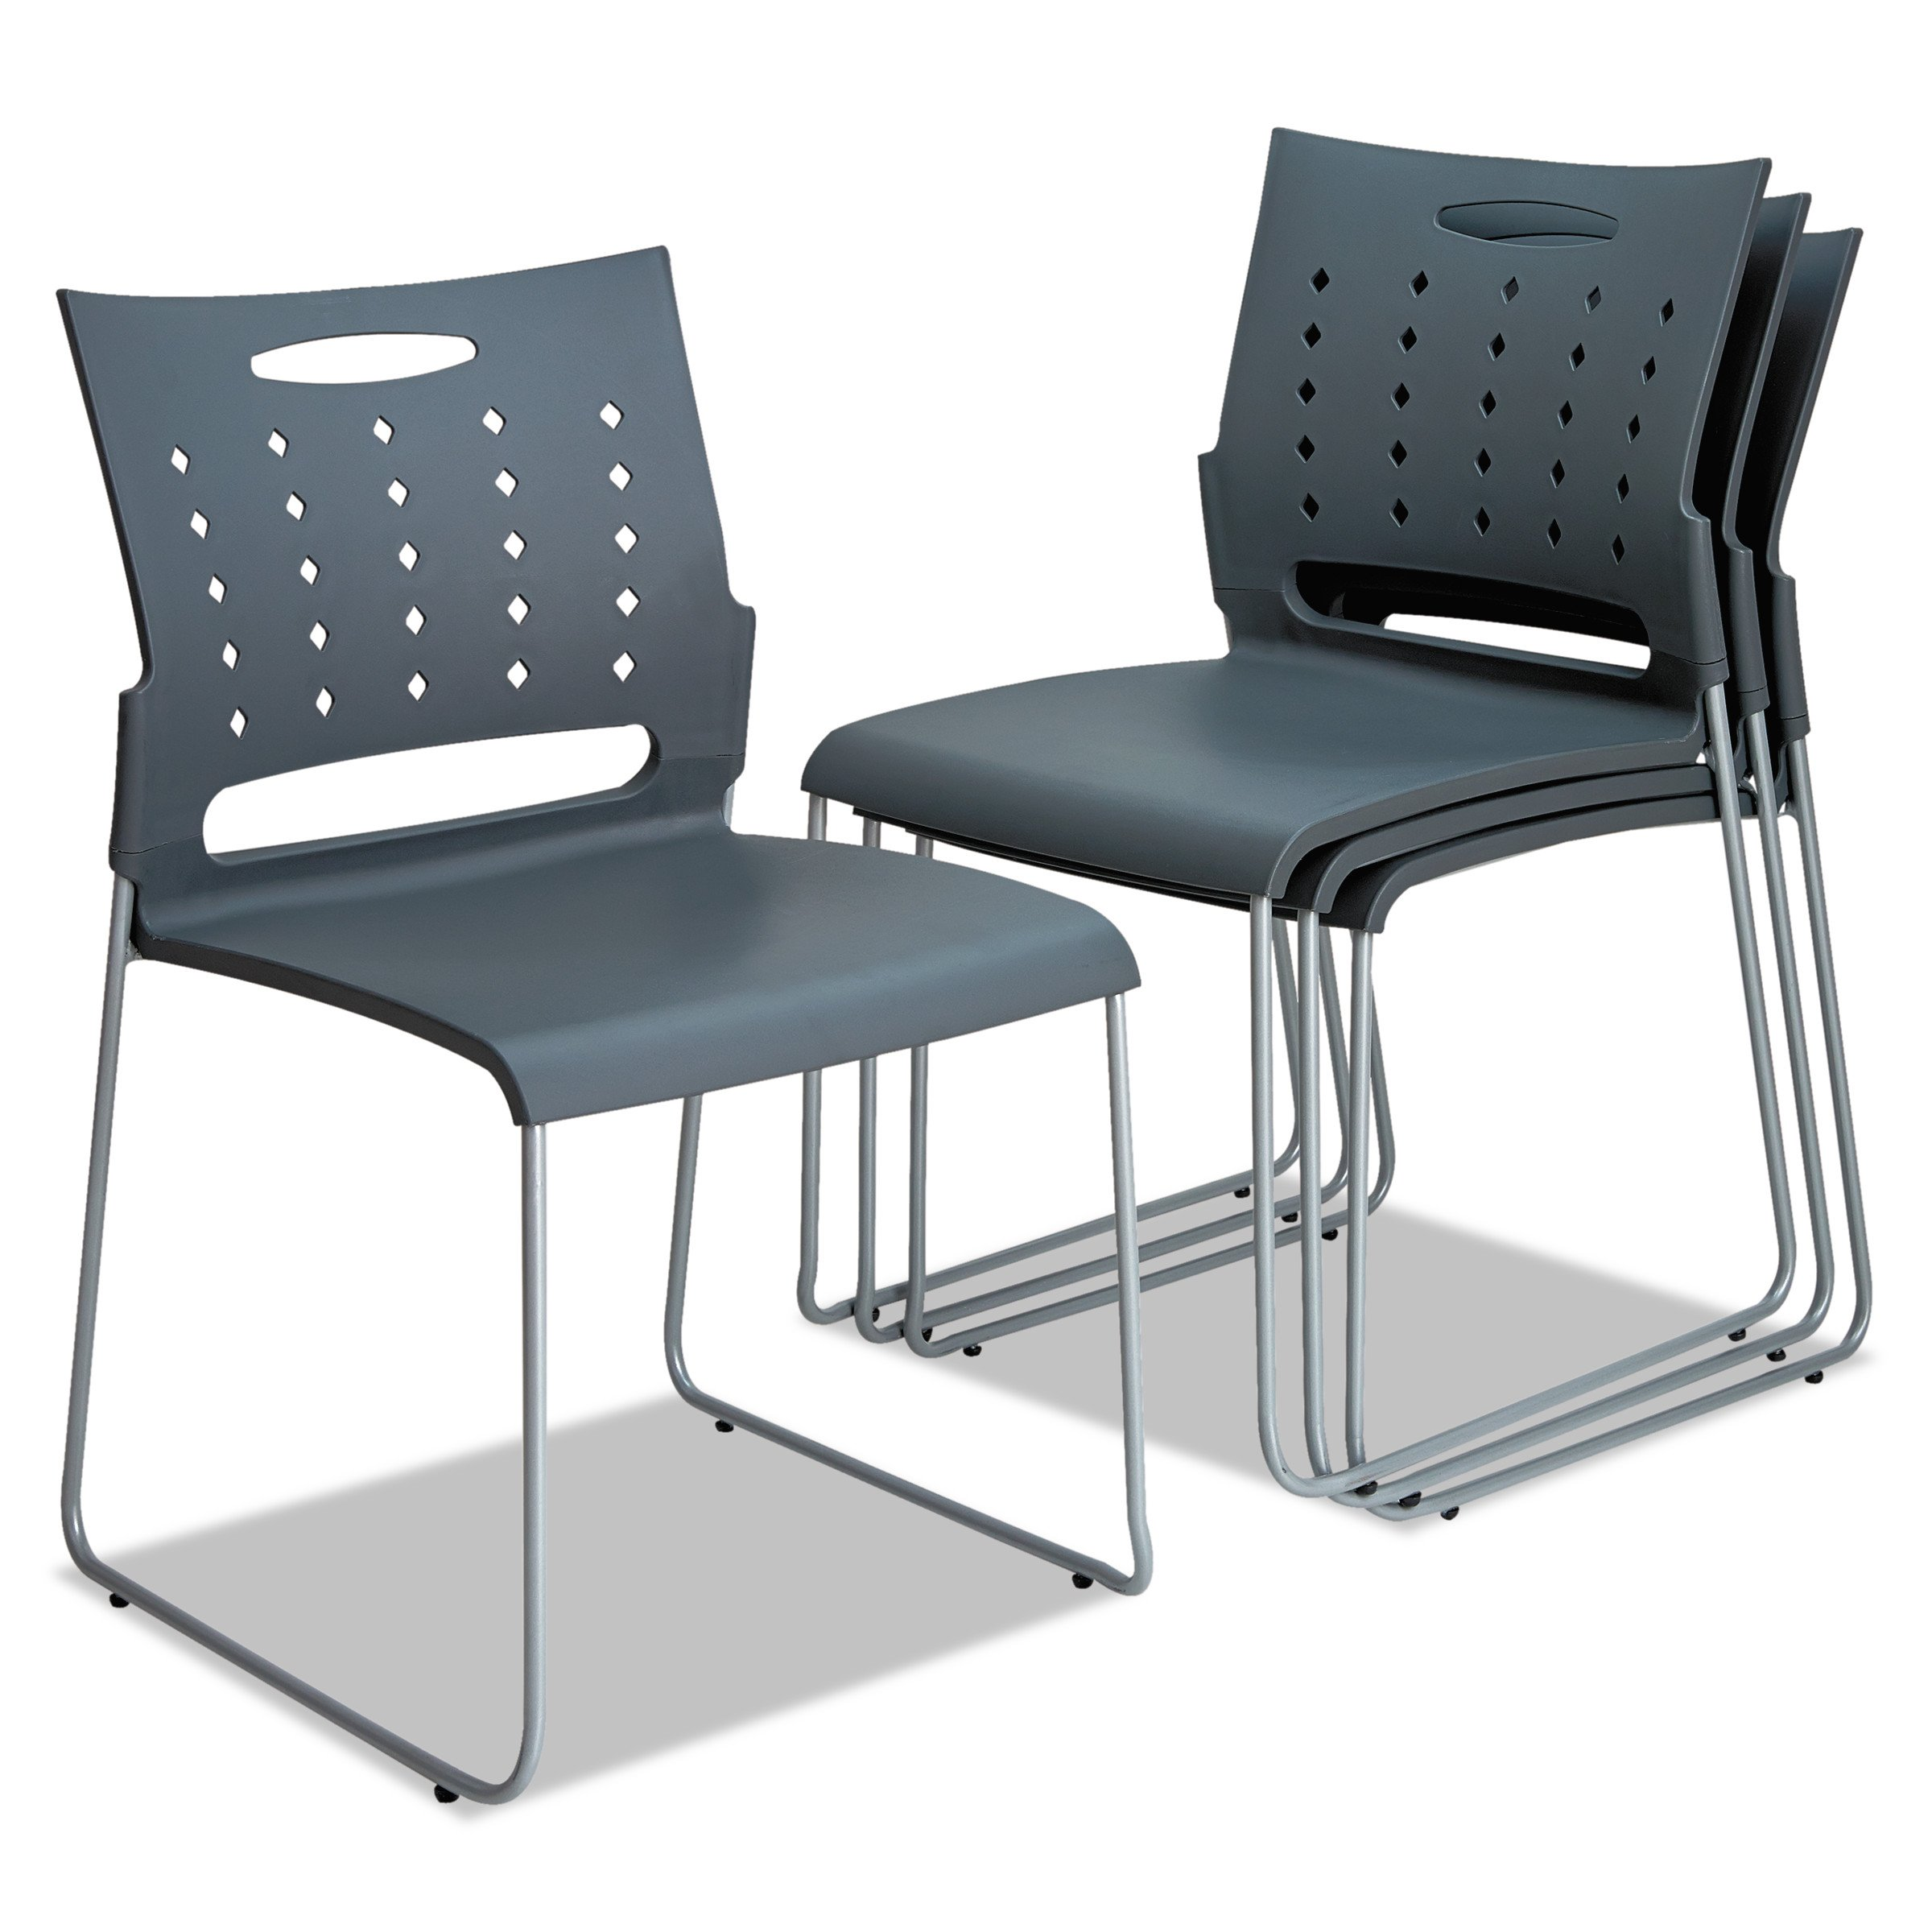 Alera ALESC6546 Continental Series Perforated Back Stacking Chairs, Charcoal Gray (Case of 4)